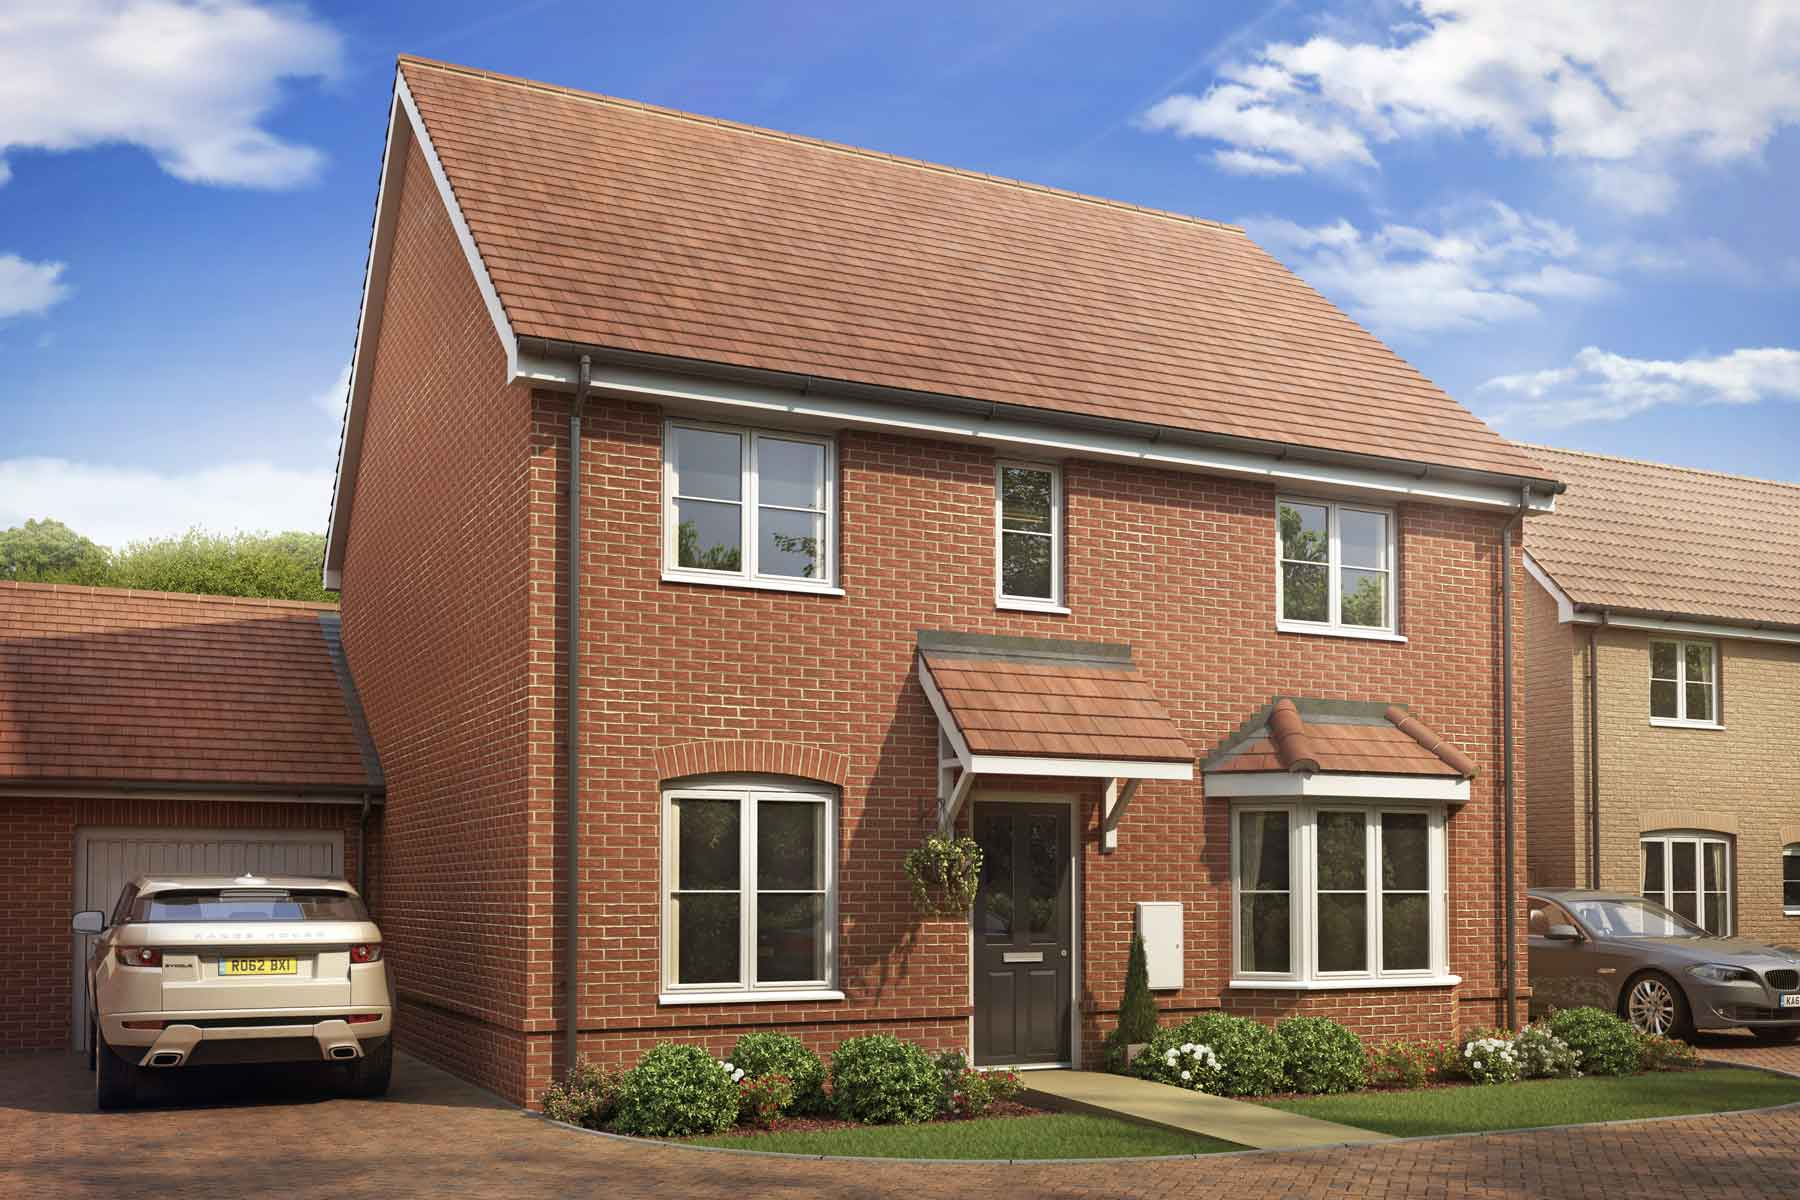 Artist impression of The Shelford, Staunton Gate